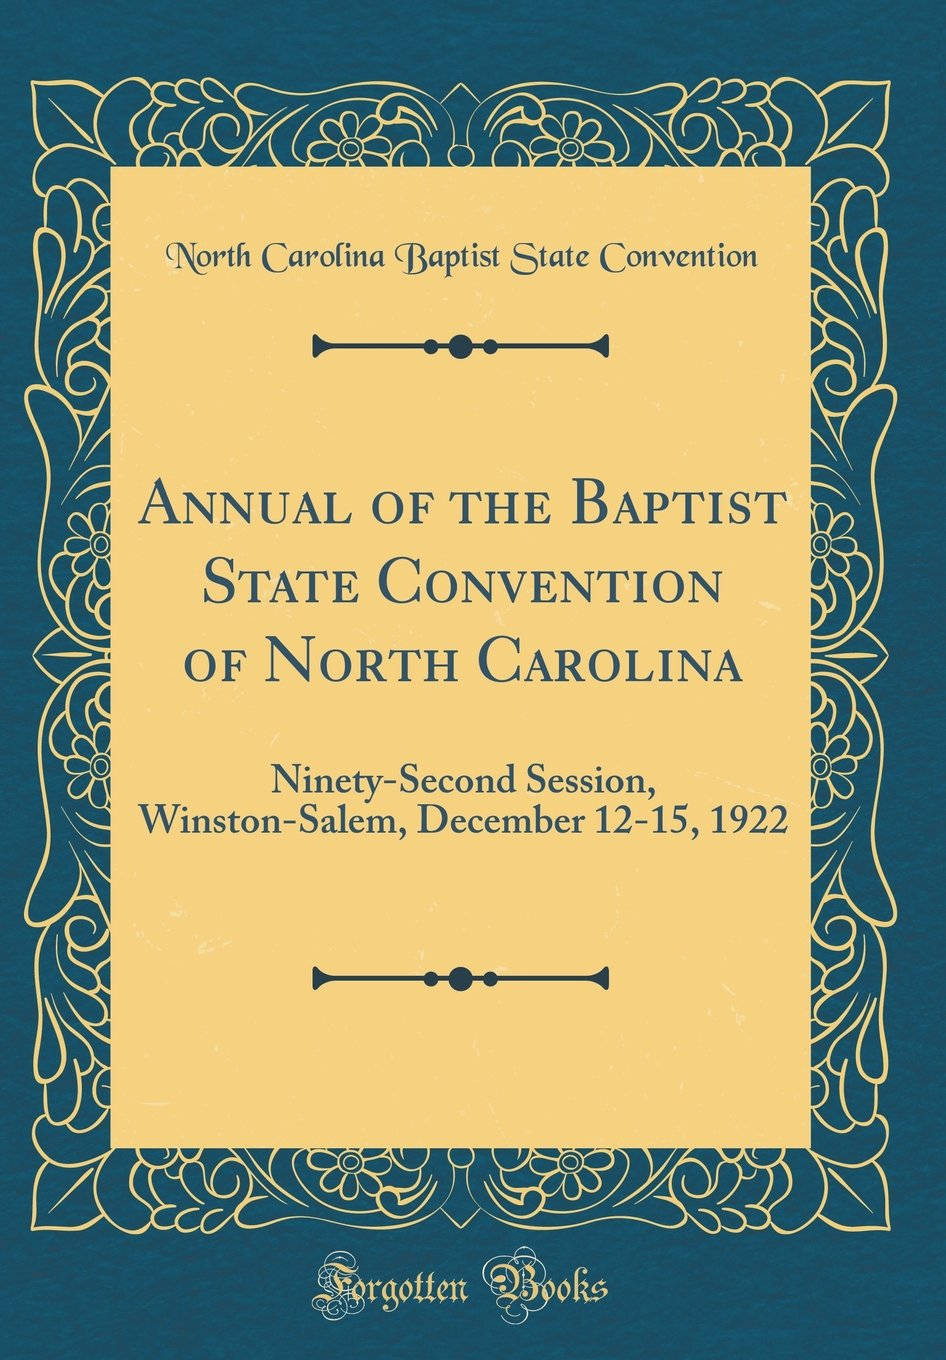 Download Annual of the Baptist State Convention of North Carolina: Ninety-Second Session, Winston-Salem, December 12-15, 1922 (Classic Reprint) ebook